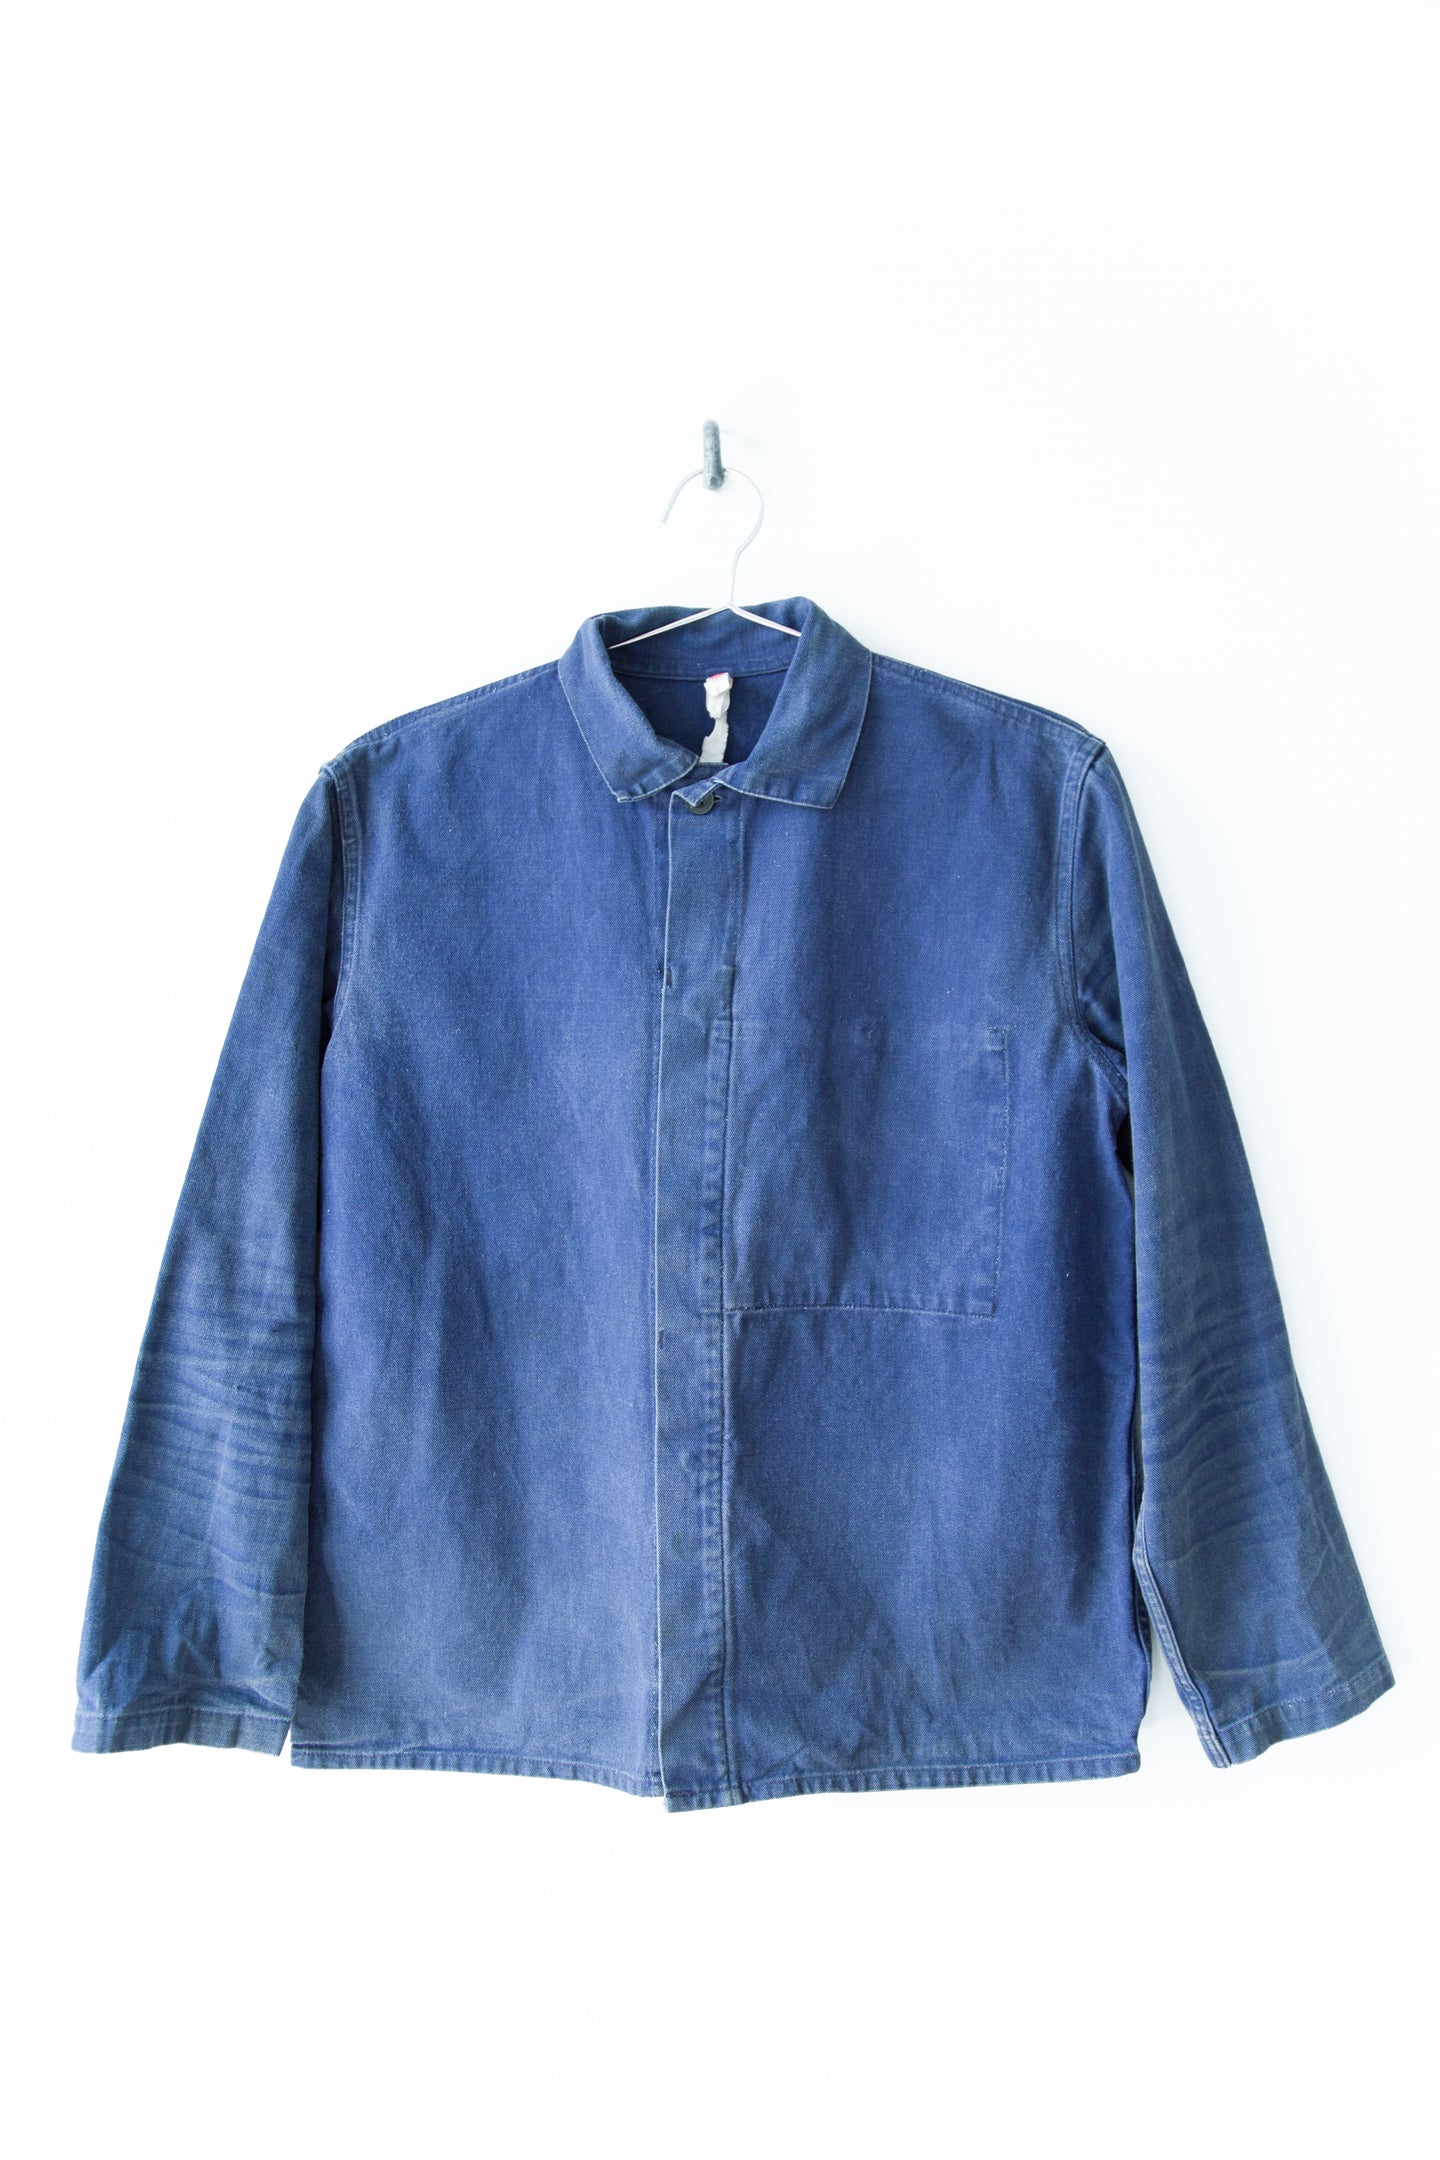 No Pocket Chore Jacket